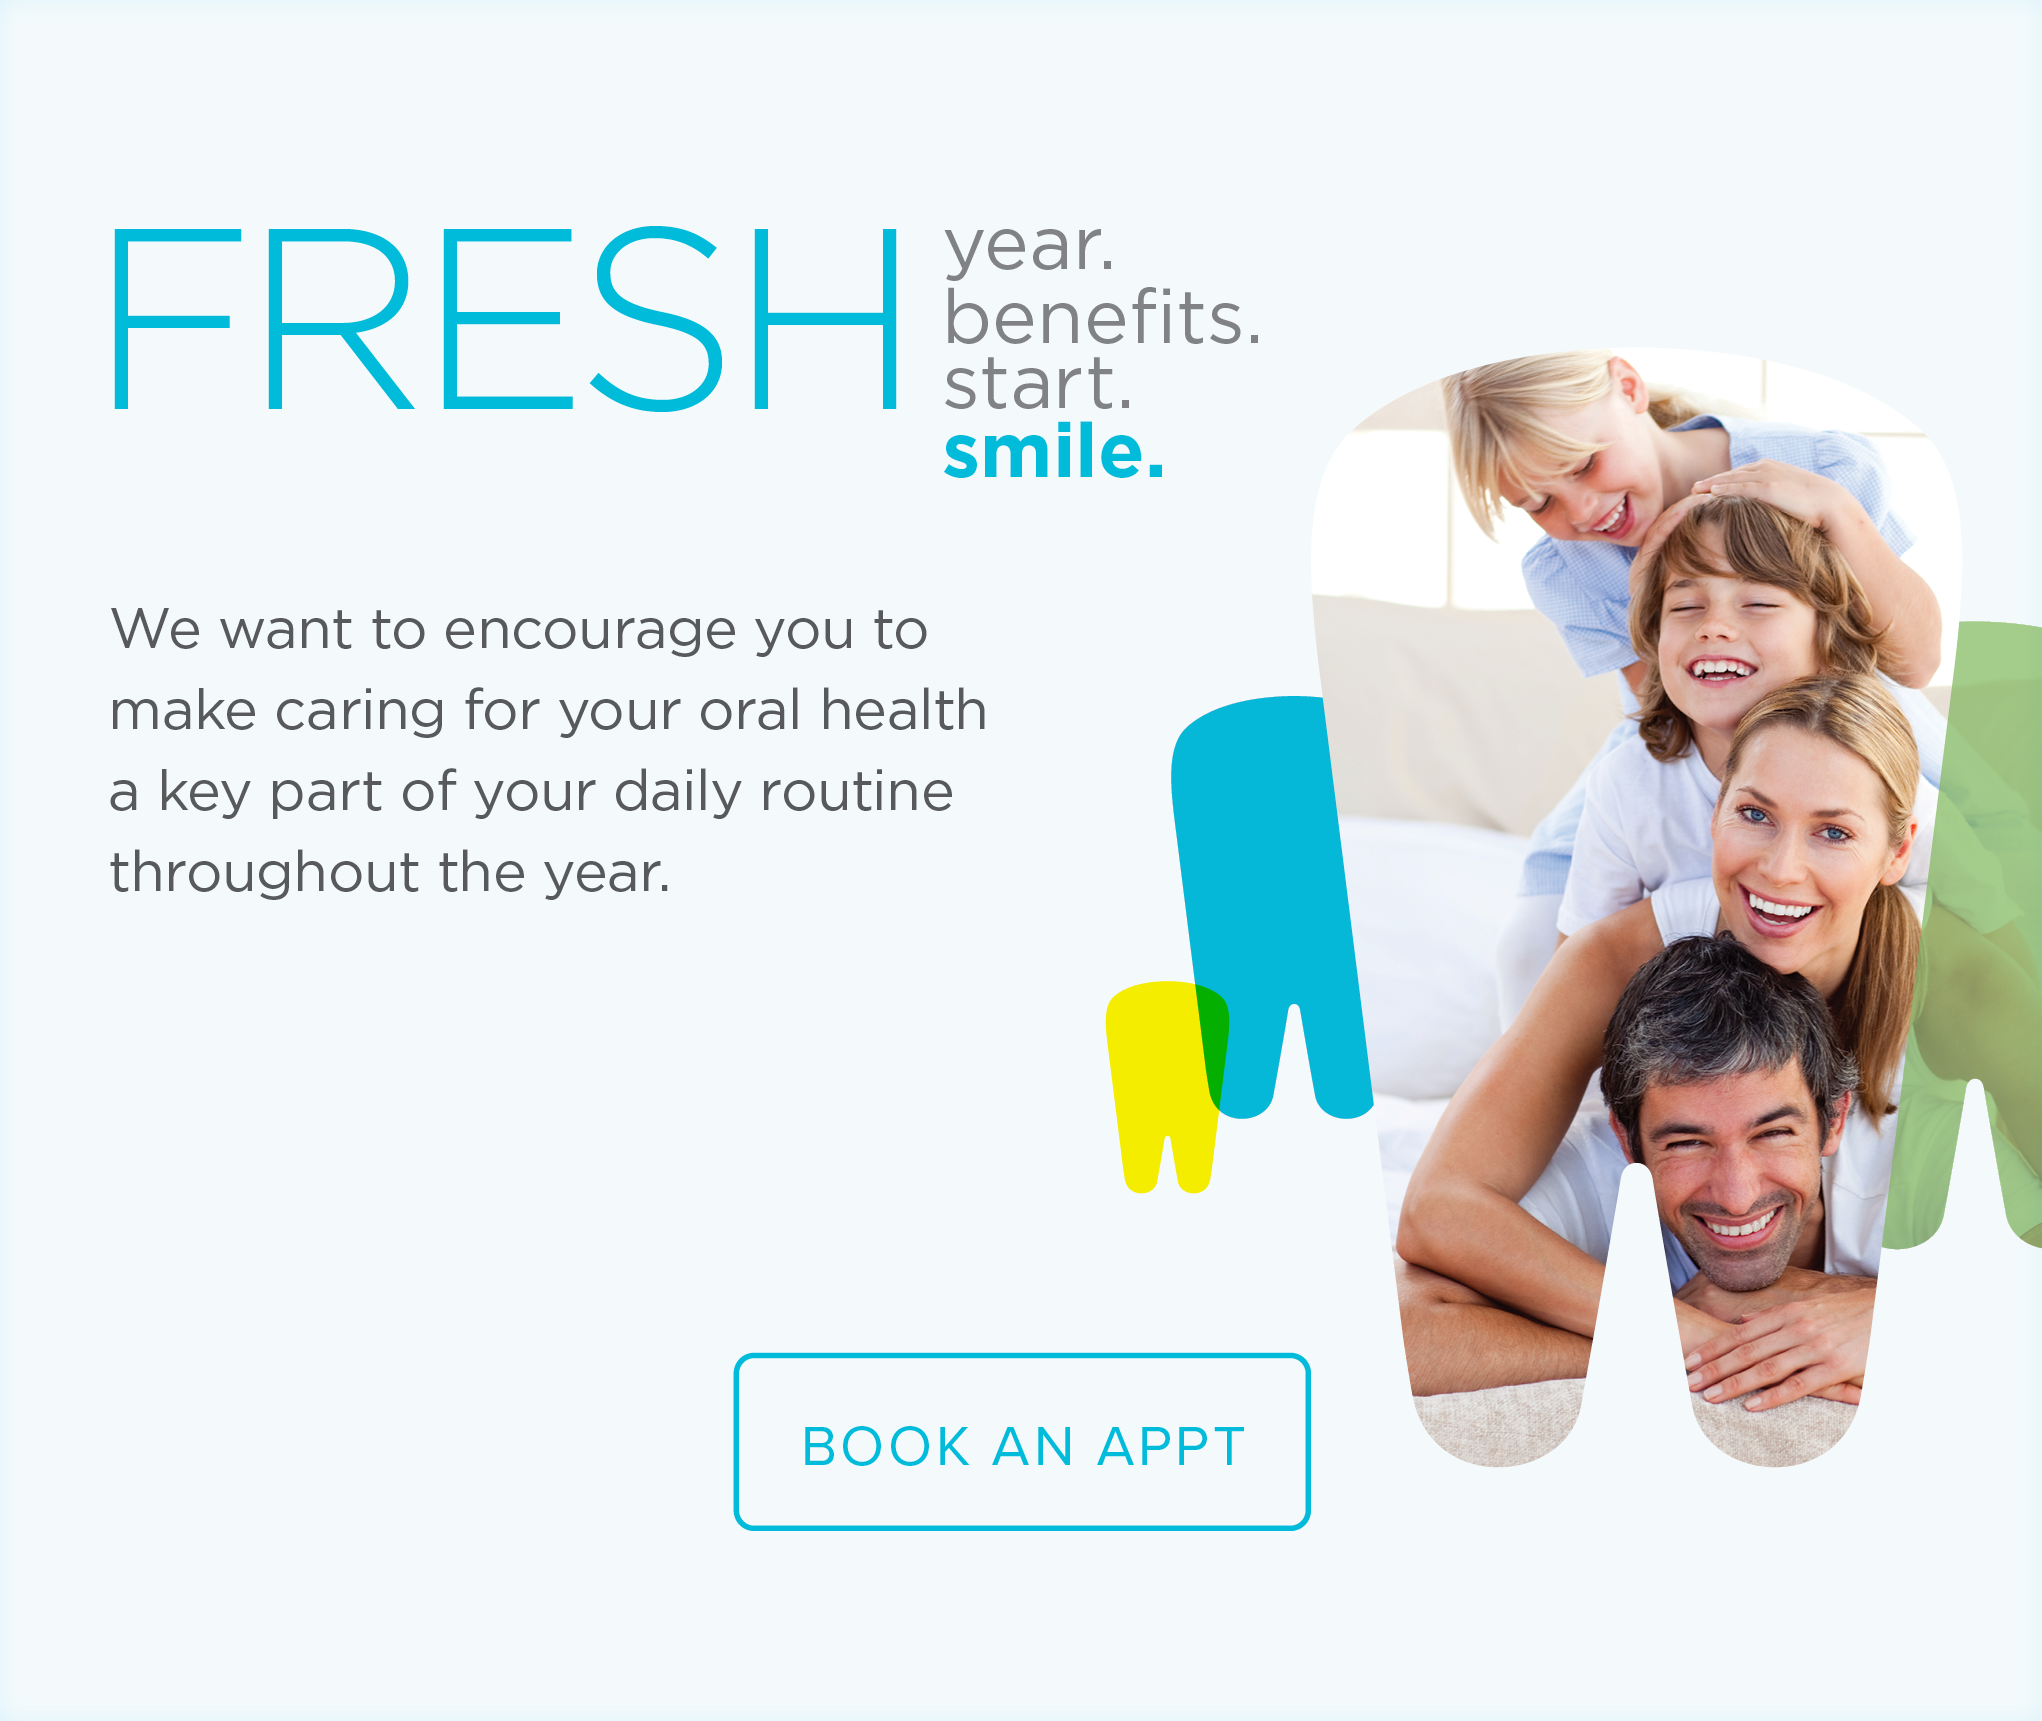 Fort Collins Dental Group and Orthodontics - Make the Most of Your Benefits